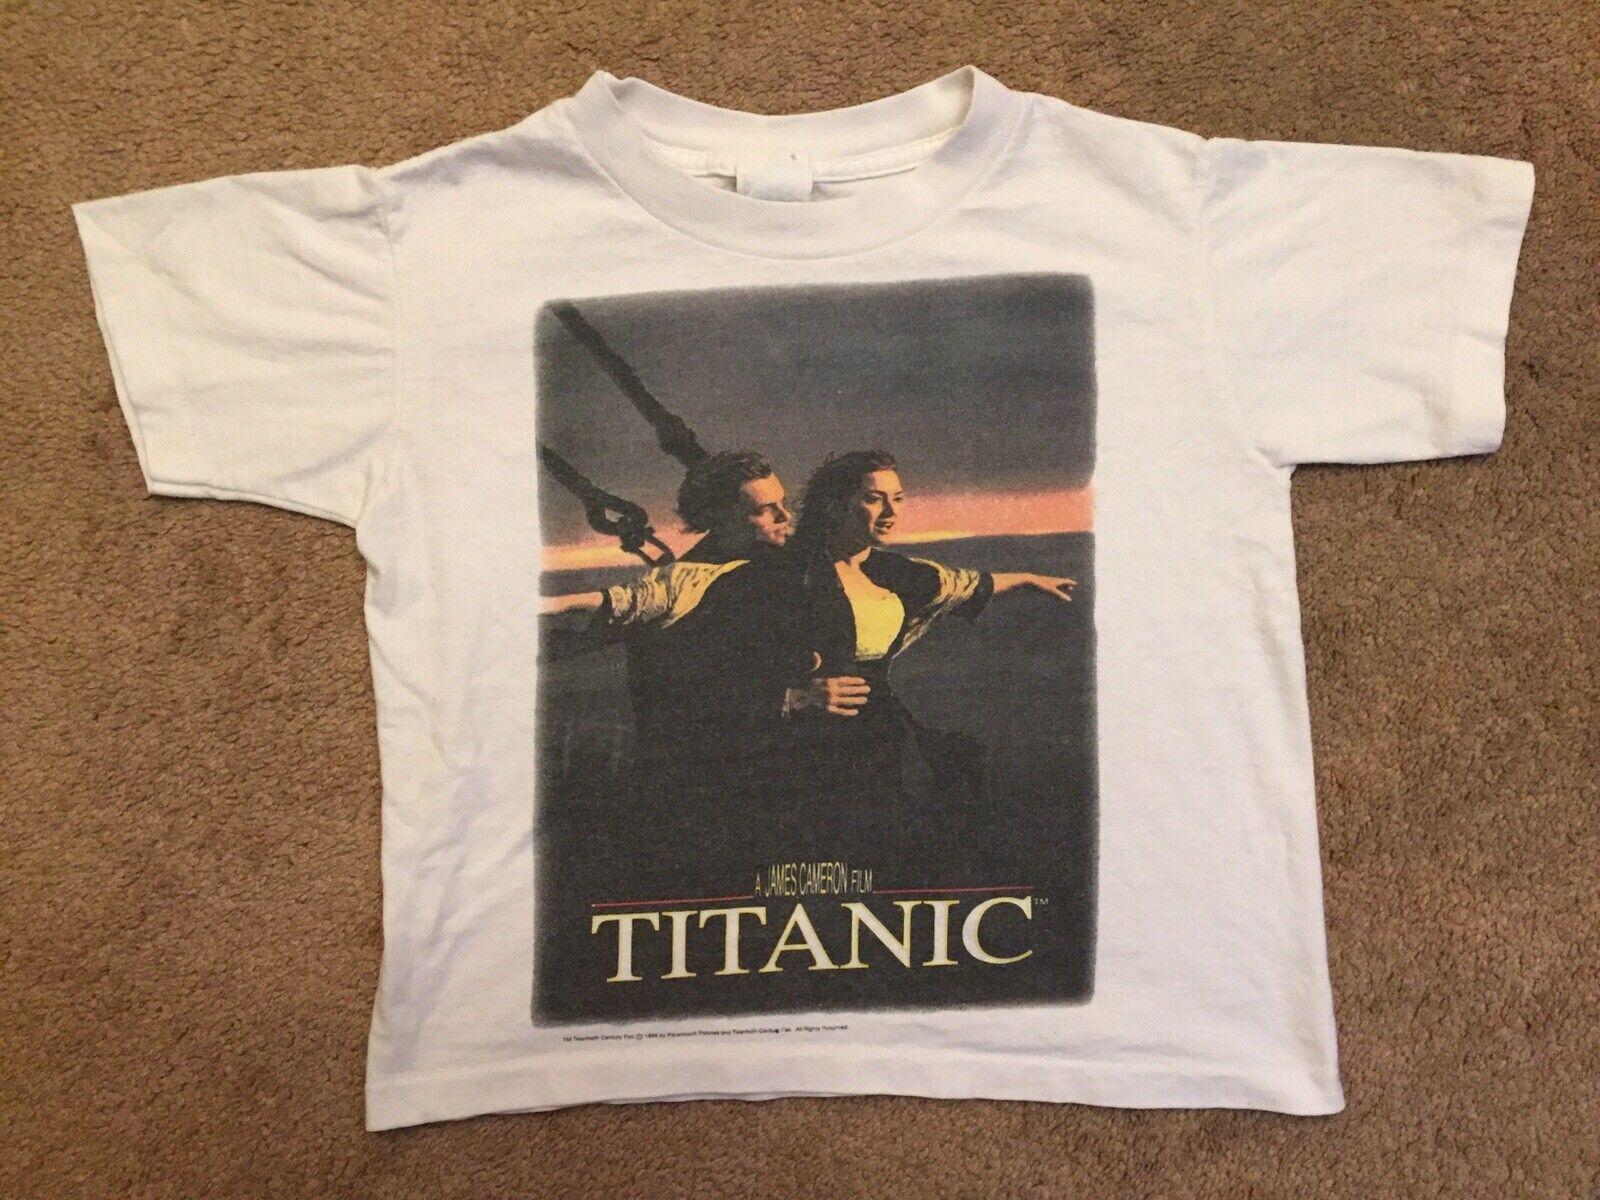 Vintage 90s 1996 Titanic Expedition Movies Discovery T Shirt XL Size